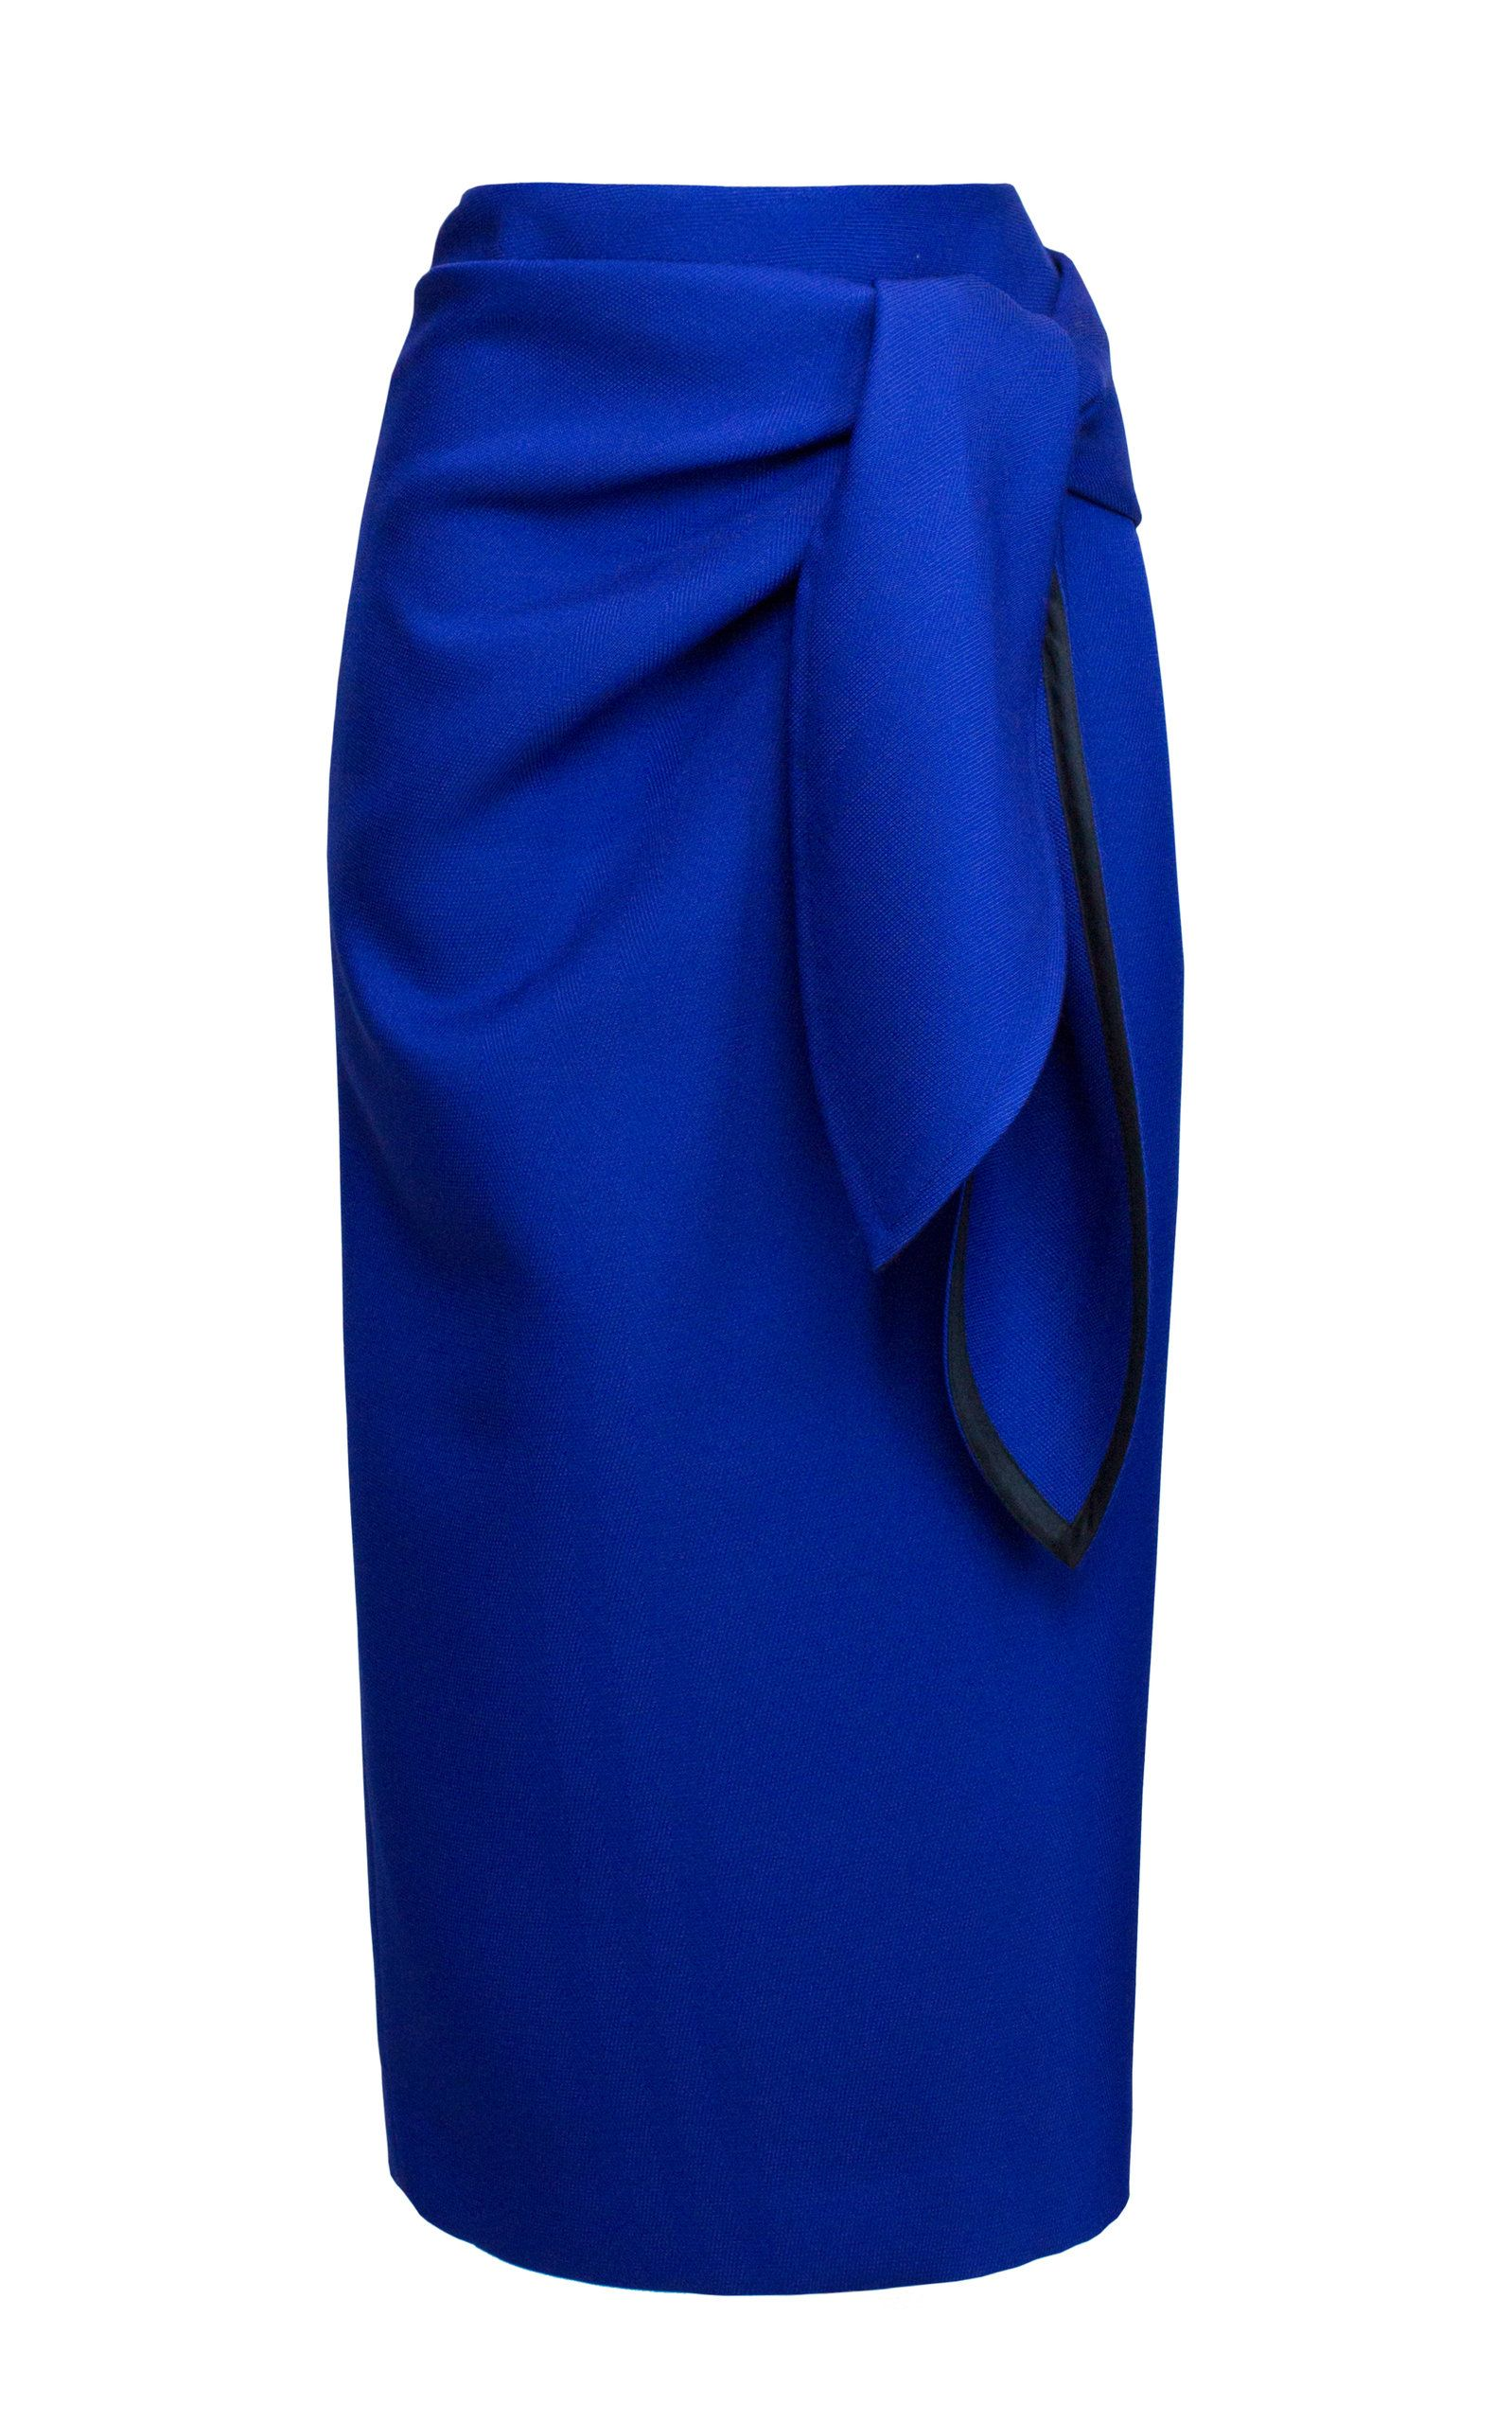 Lake Studio Tie-Front Wrap-Effect Twill Midi Pencil Skirt Size: 46